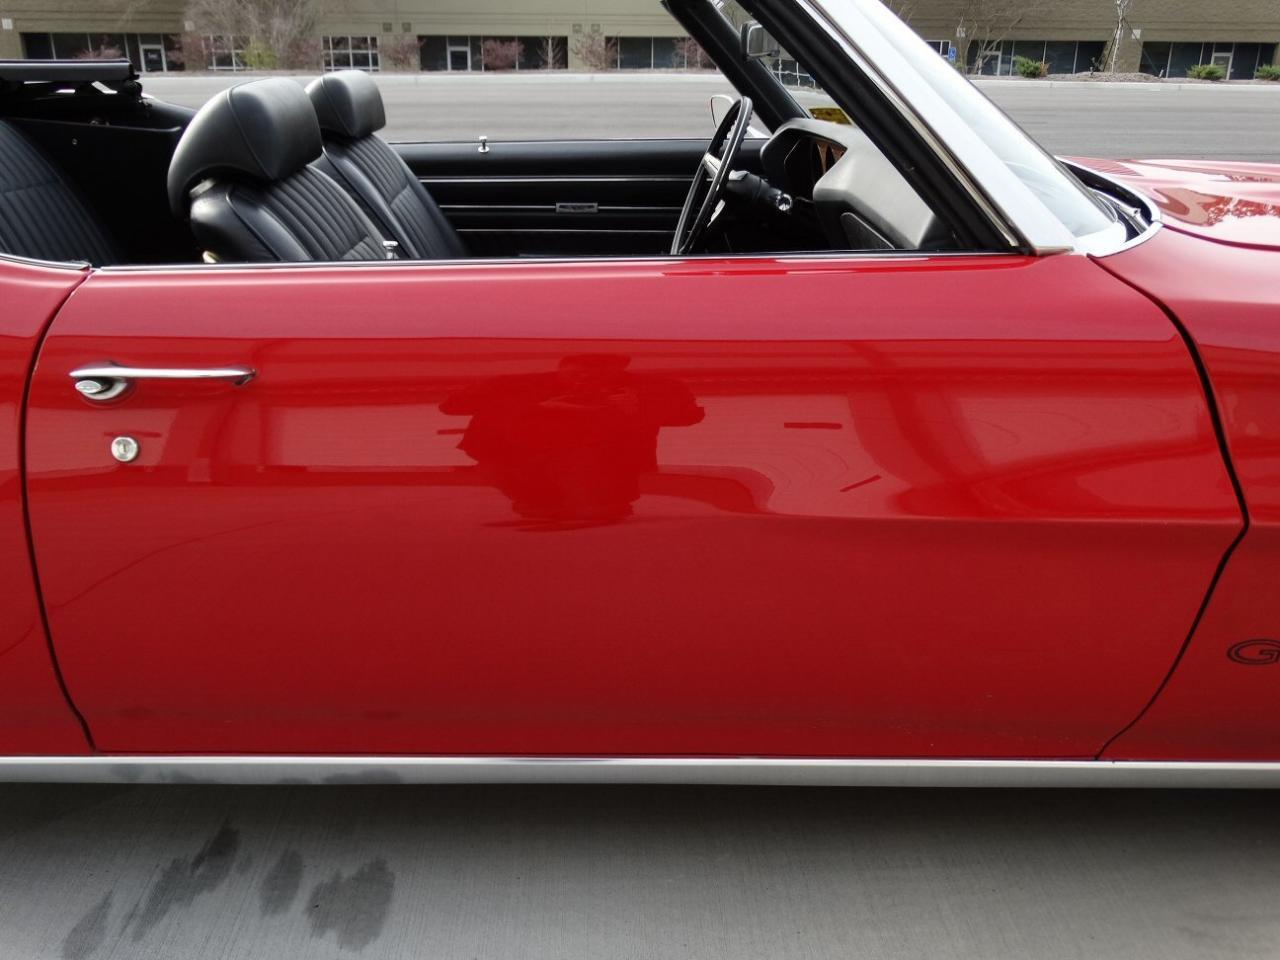 Large Picture of Classic '70 Pontiac GTO - $71,000.00 Offered by Gateway Classic Cars - Atlanta - KF5T